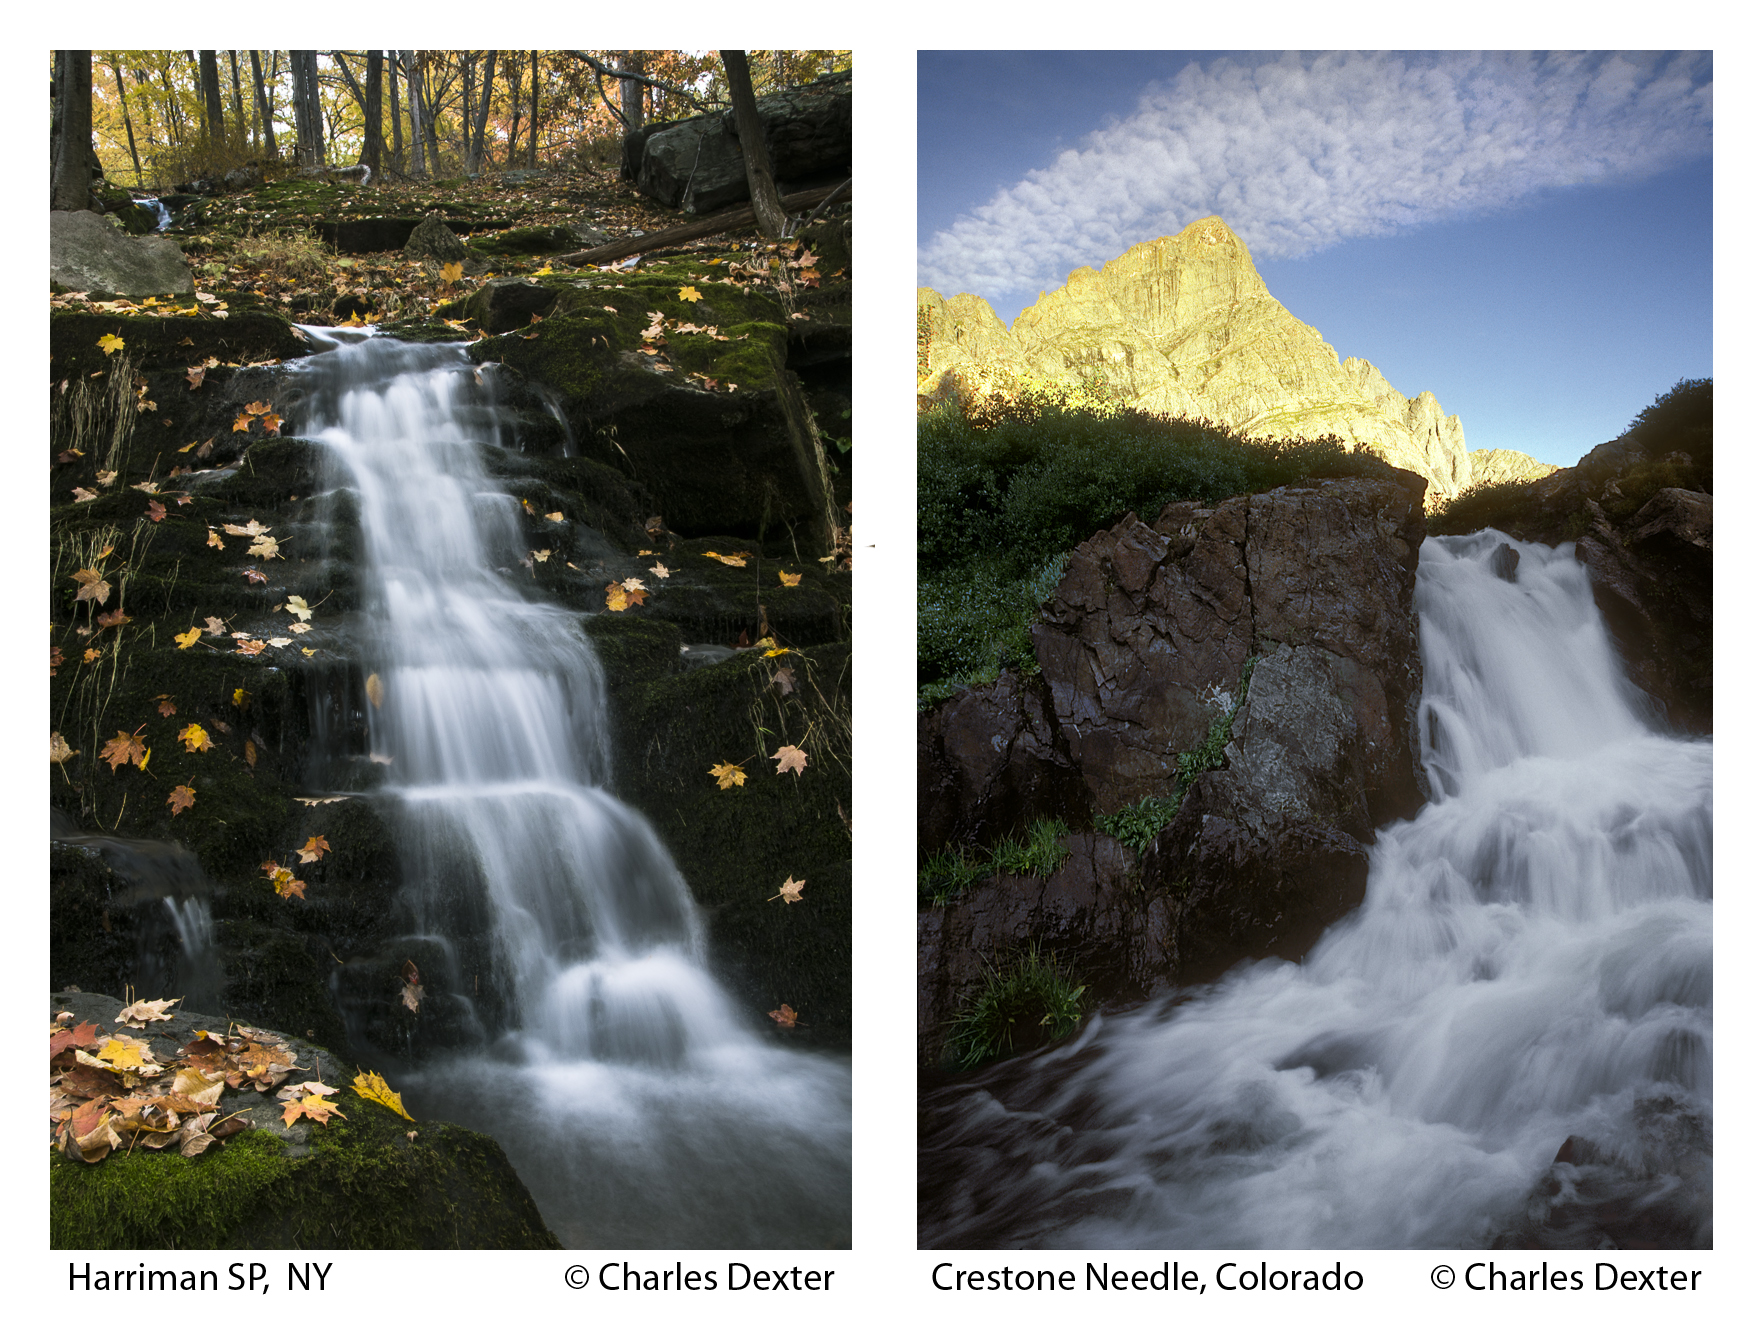 Two photos compared: Greenbrook Pond, New Jersey and La Plata Peak, Colorado ©Charles Dexter